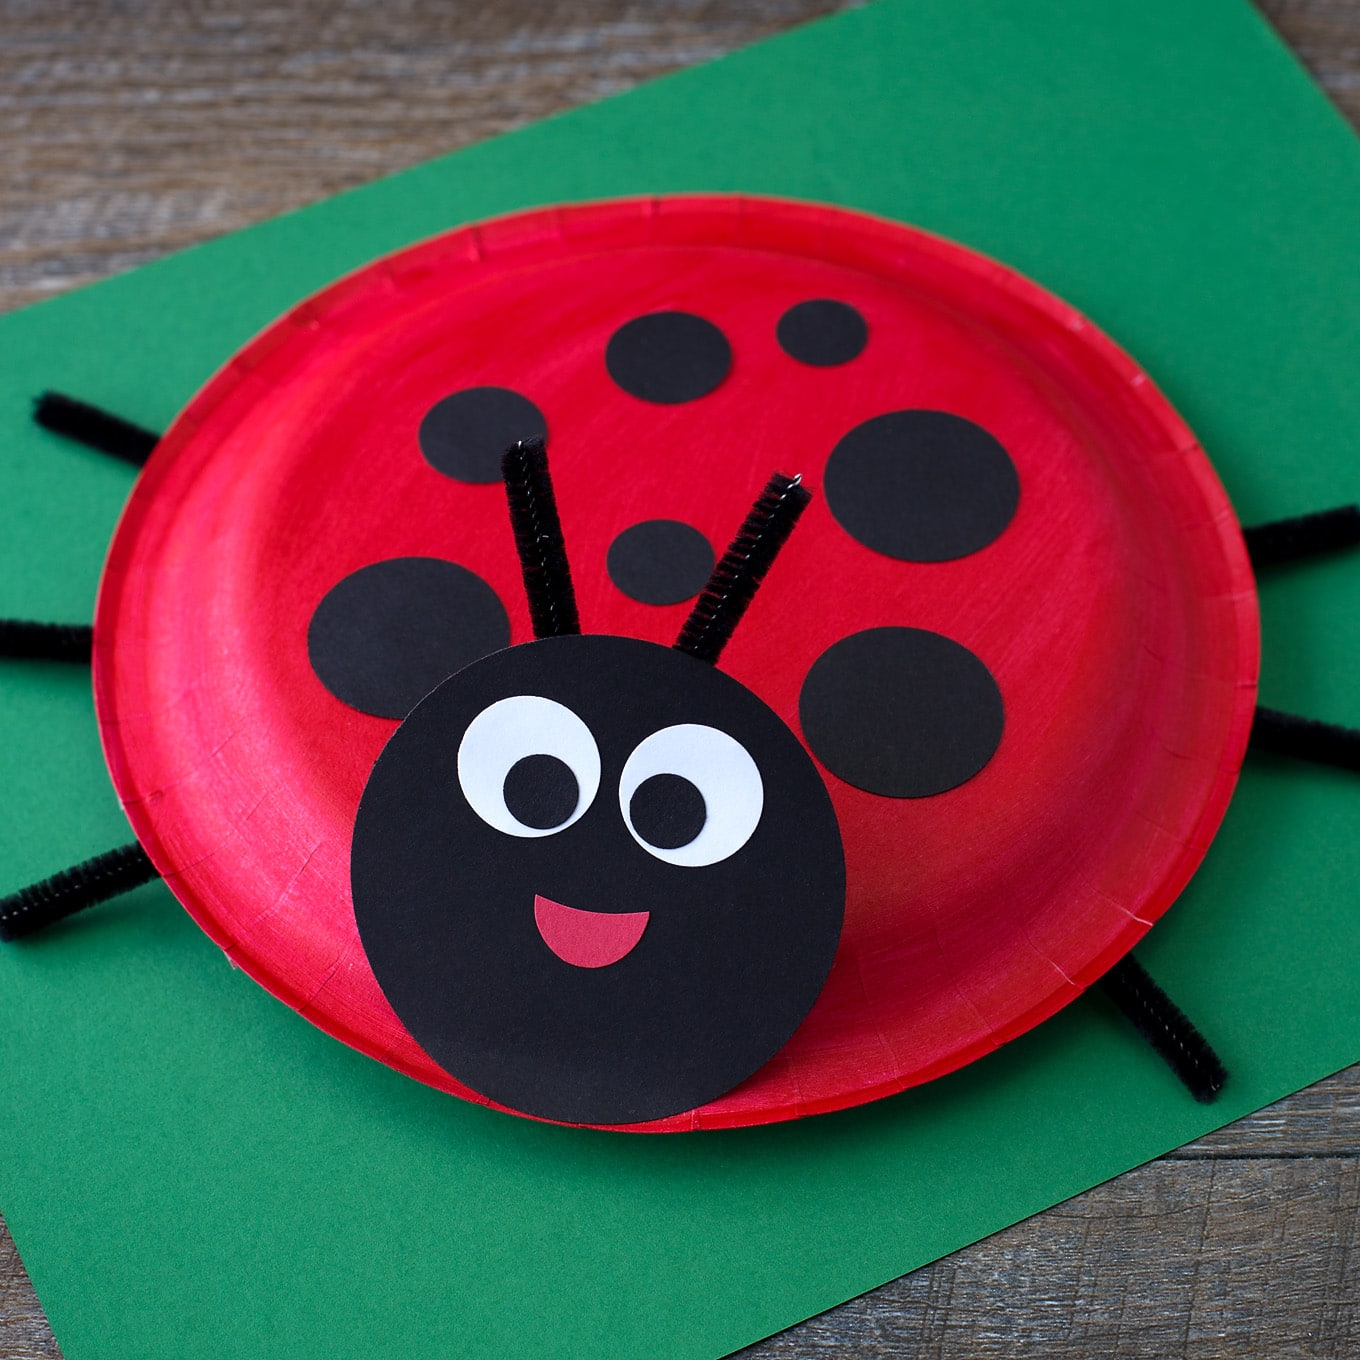 Learn how to make a simple Paper Plate Ladybug with kids. It's perfect for summer, insect lovers, and for strengthing fine-motor skills.